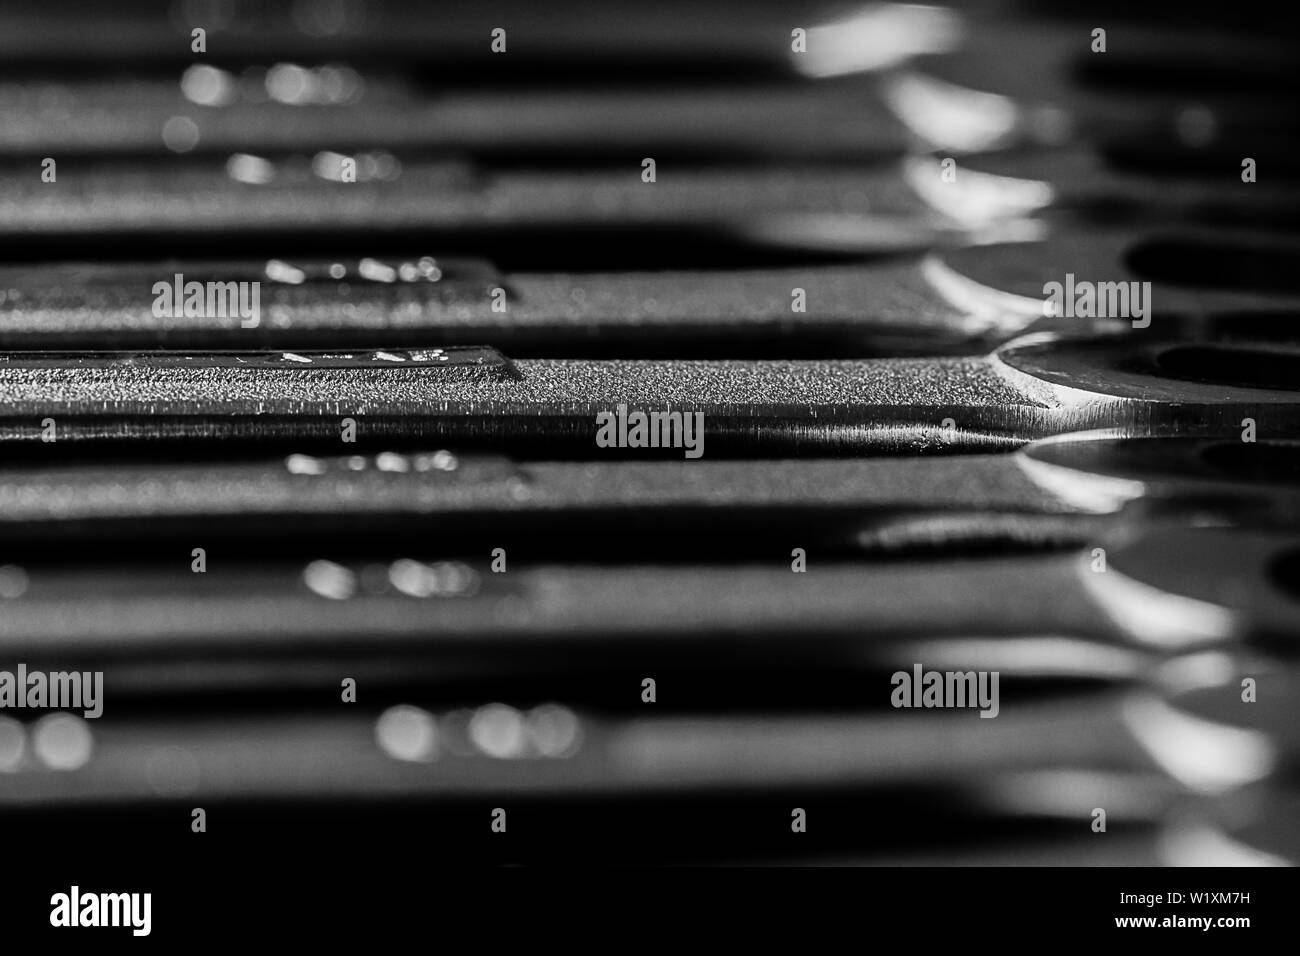 chrome wrenches laying on a table lined up with a very shallow DOF.  The wrench in the center of the image is the primary focus. Stock Photo